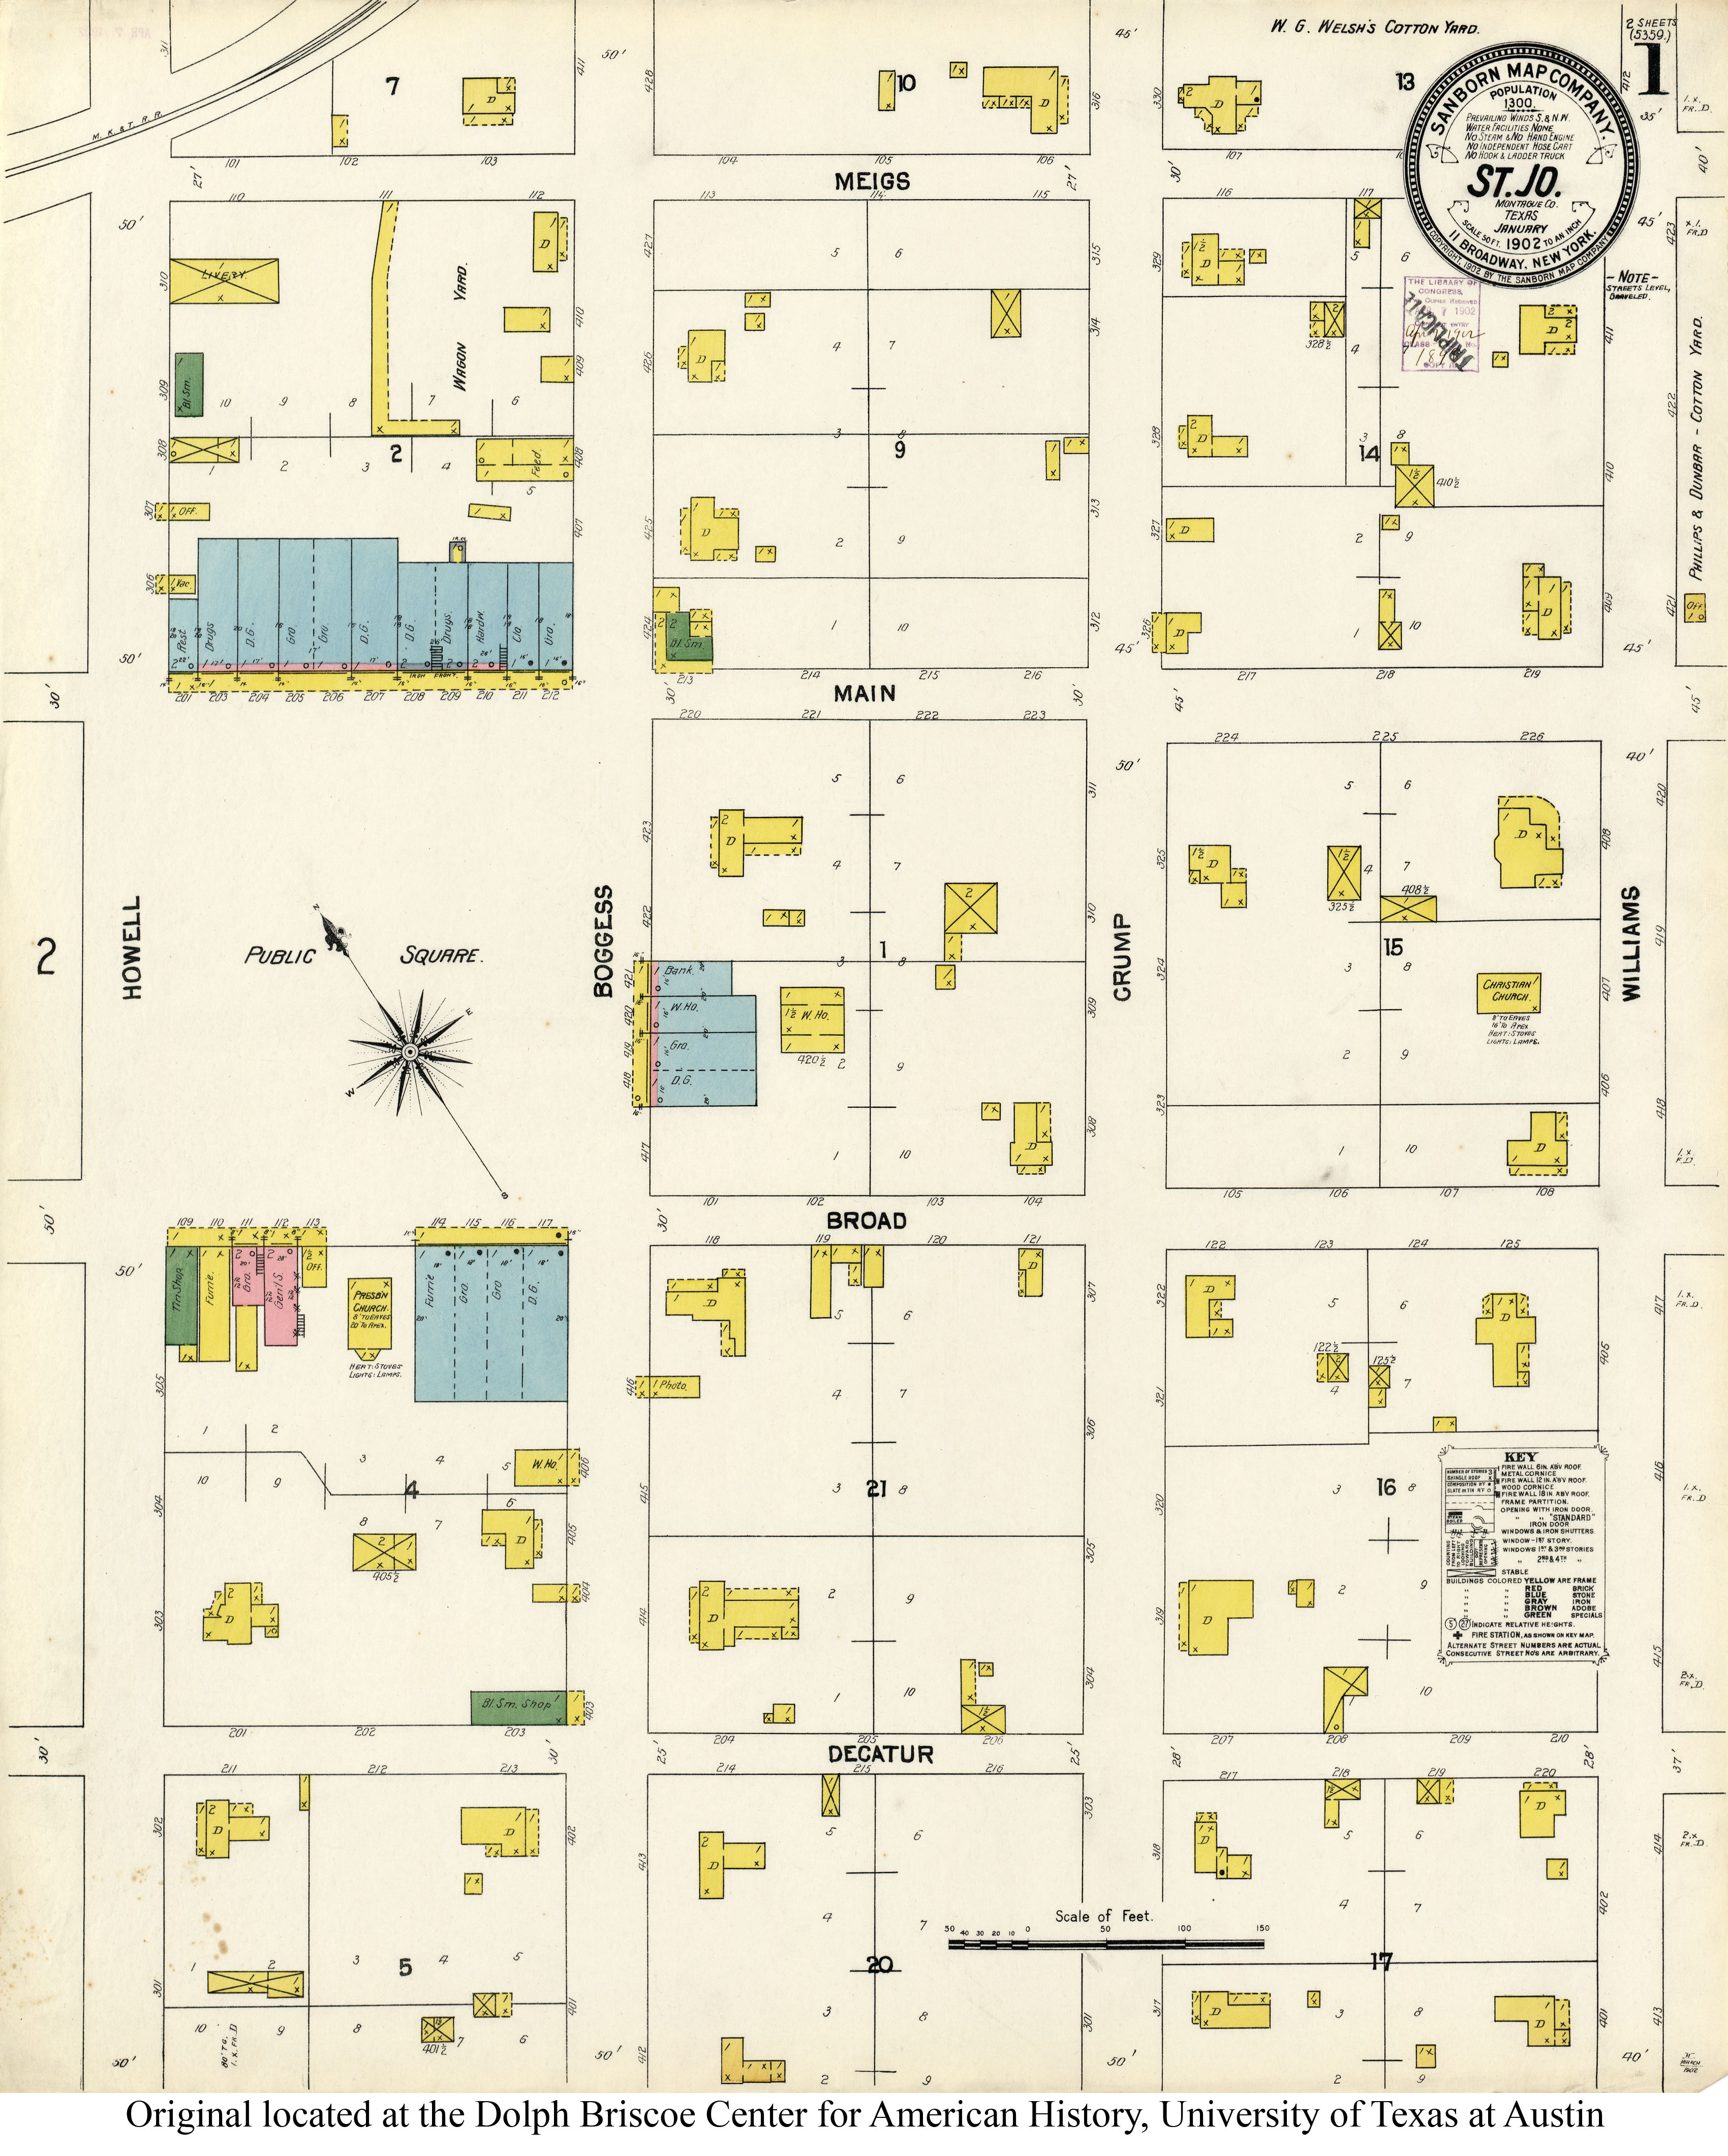 Sanborn Maps Of Texas - Perry-Castañeda Map Collection - Ut Library - Snyder Texas Map